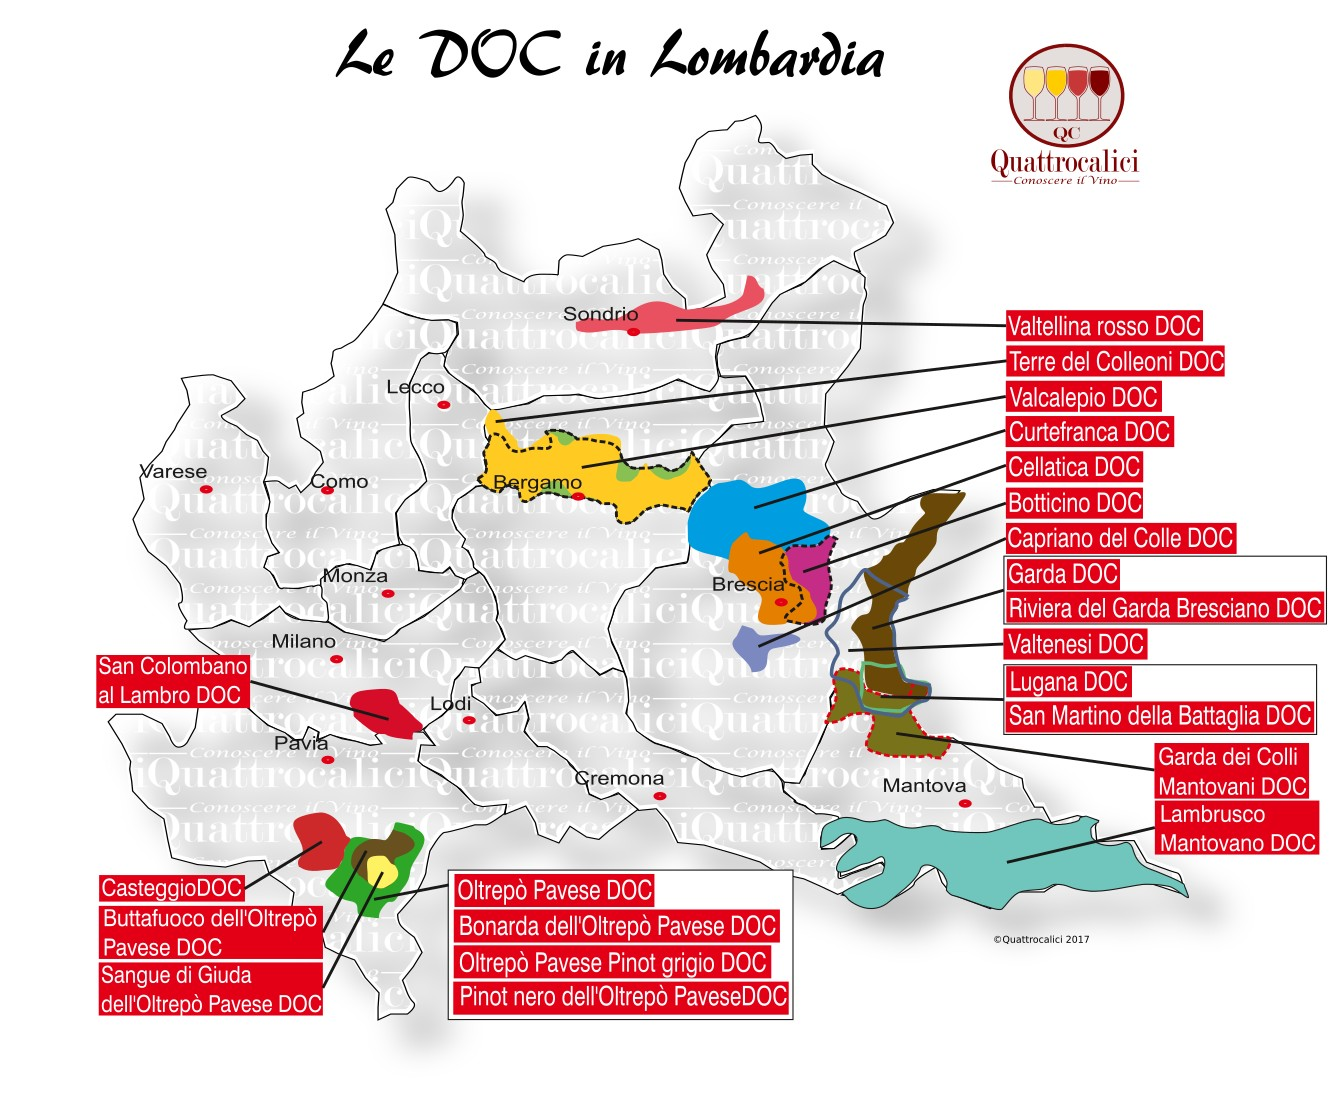 Le DOC in Lombardia